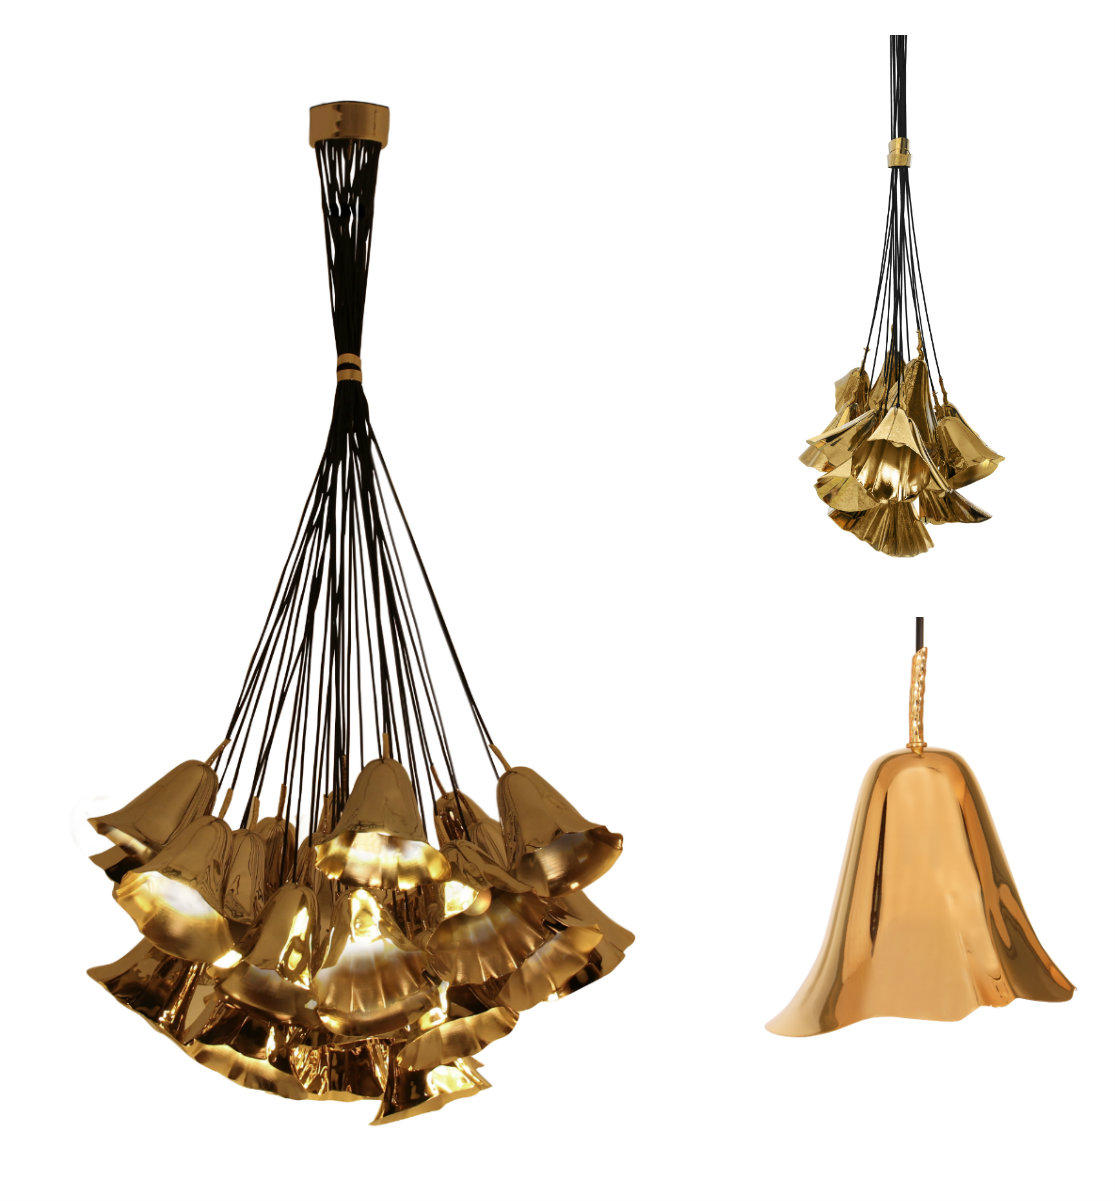 THE MOST ELEGANT CHANDELIER LIGHTING FROM KOKET chandelier lighting THE MOST ELEGANT CHANDELIER LIGHTING FROM KOKET The Most Radiant Chandelier Lighting from KOKET